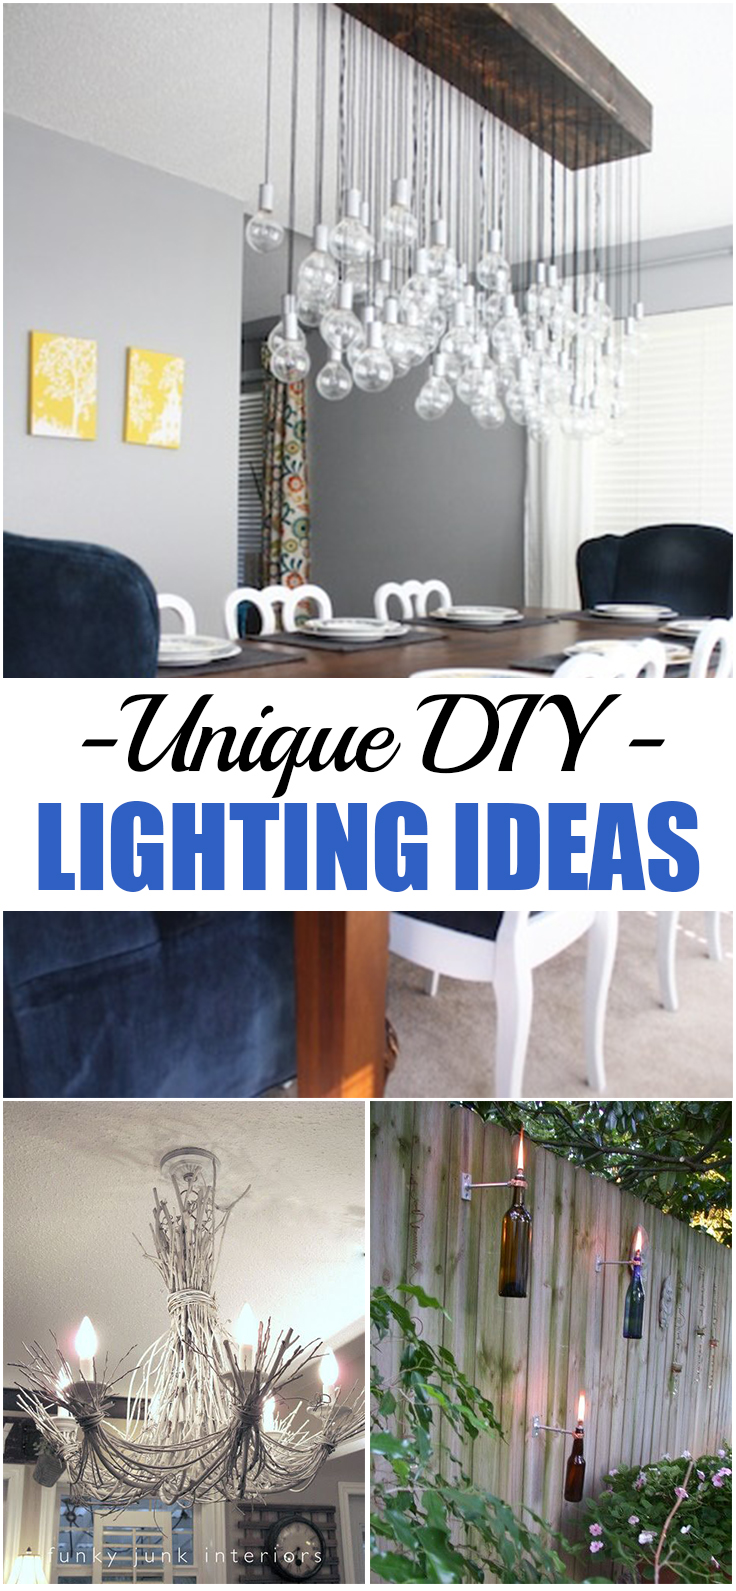 Unique DIY Lighting Ideas